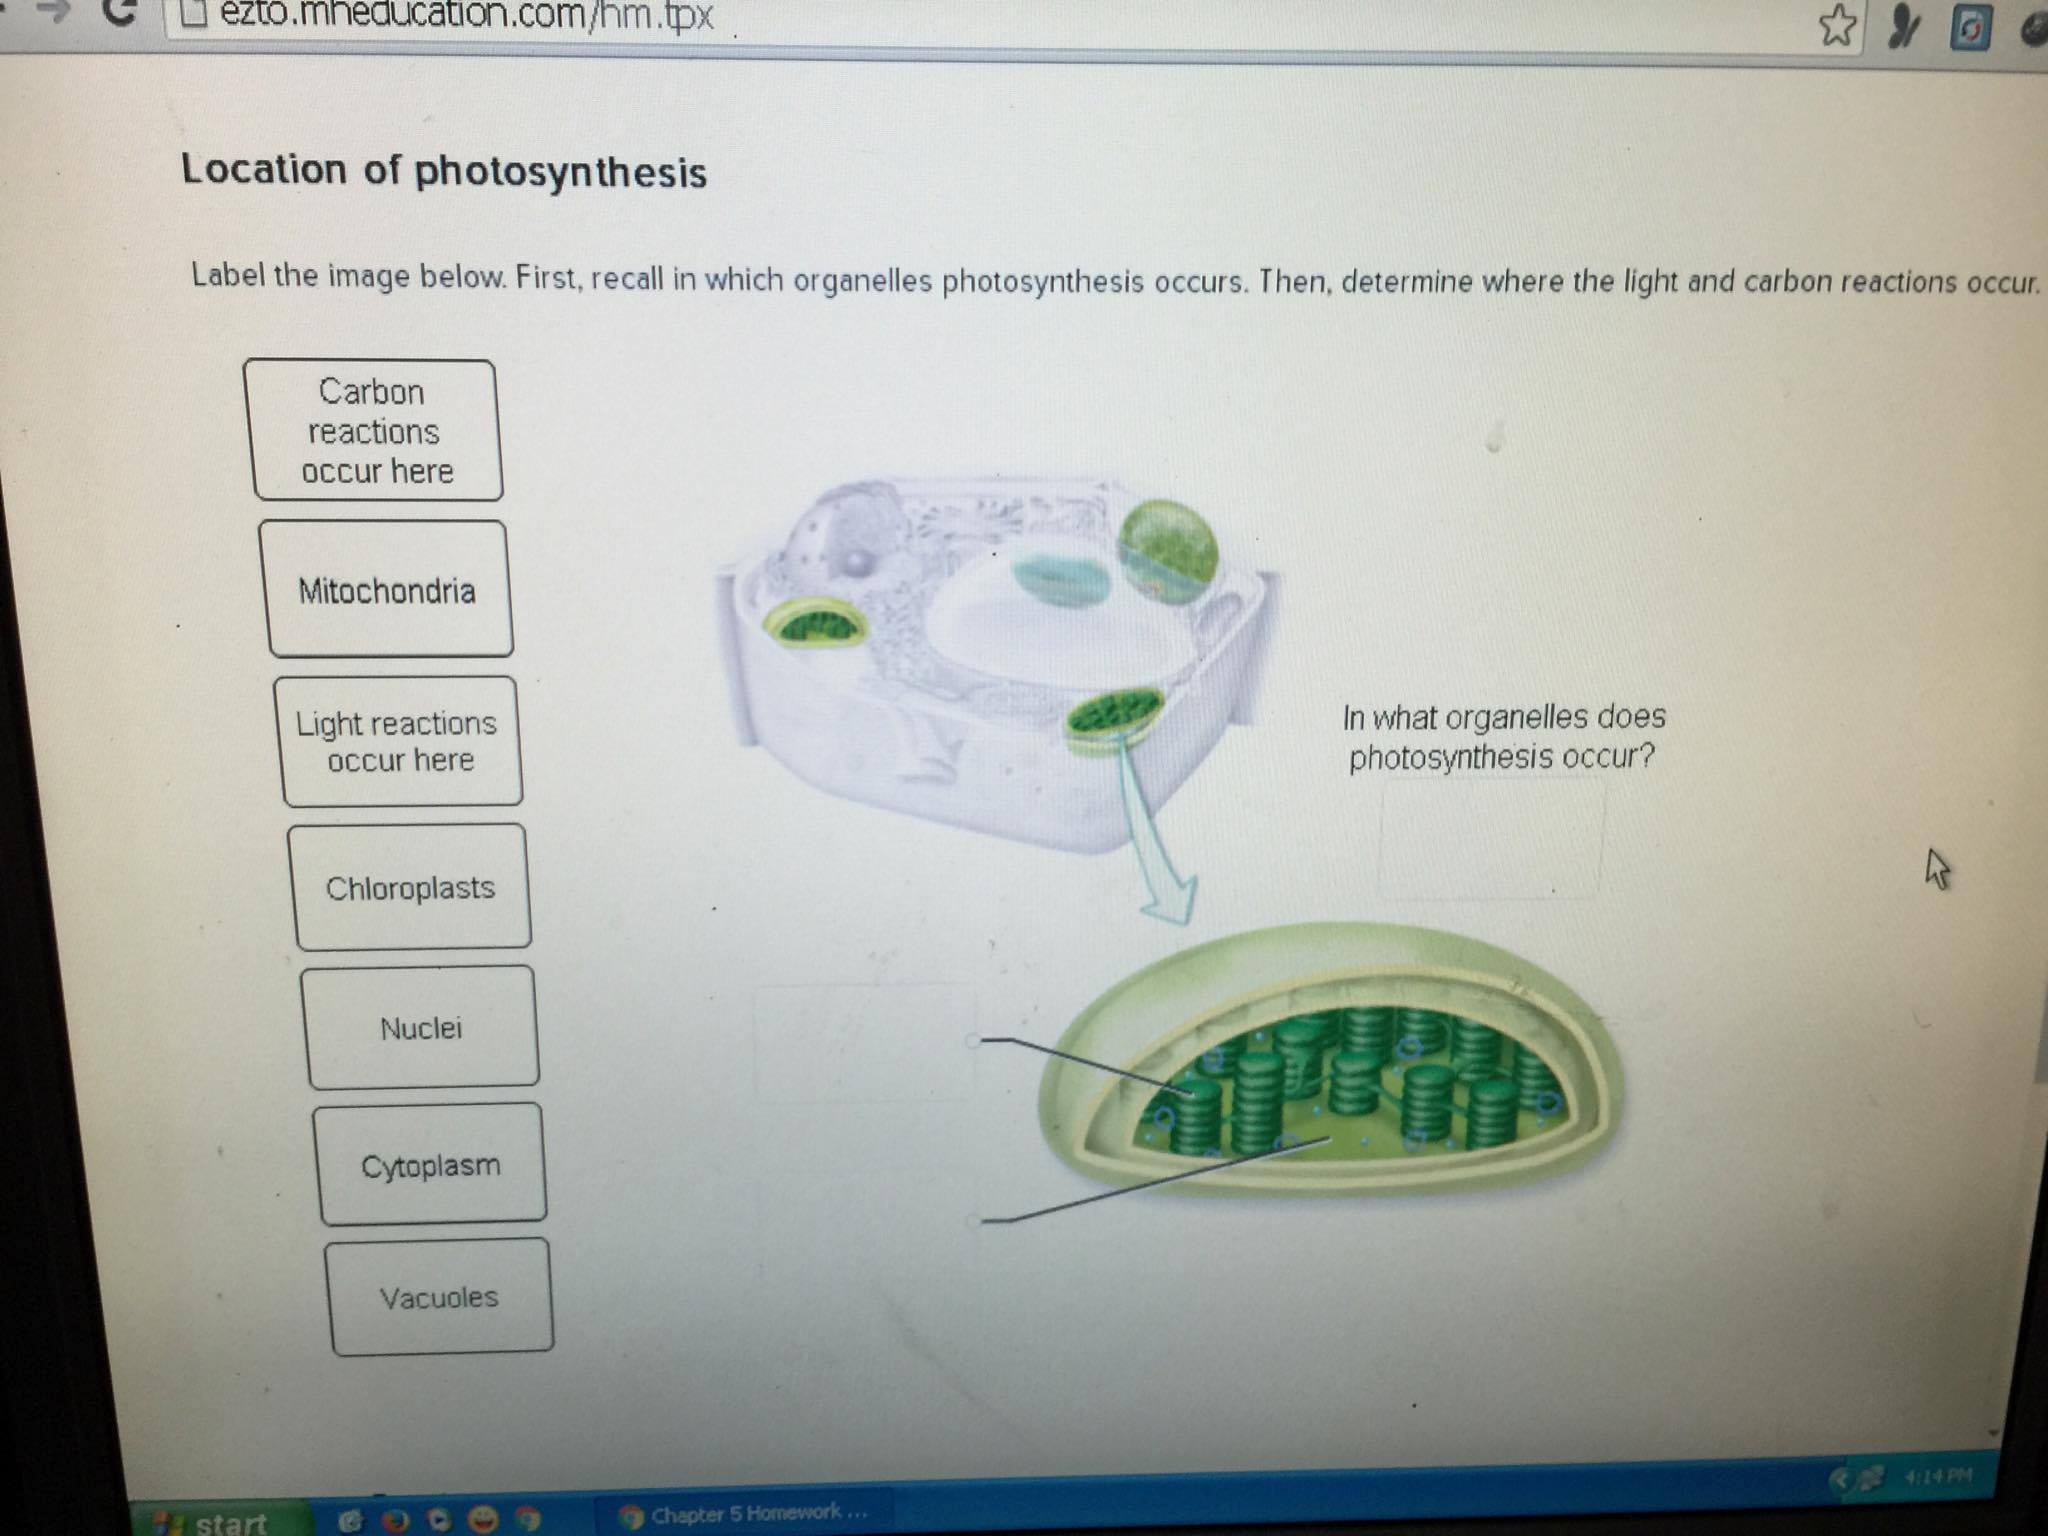 Occur in organelle does what photosynthesis